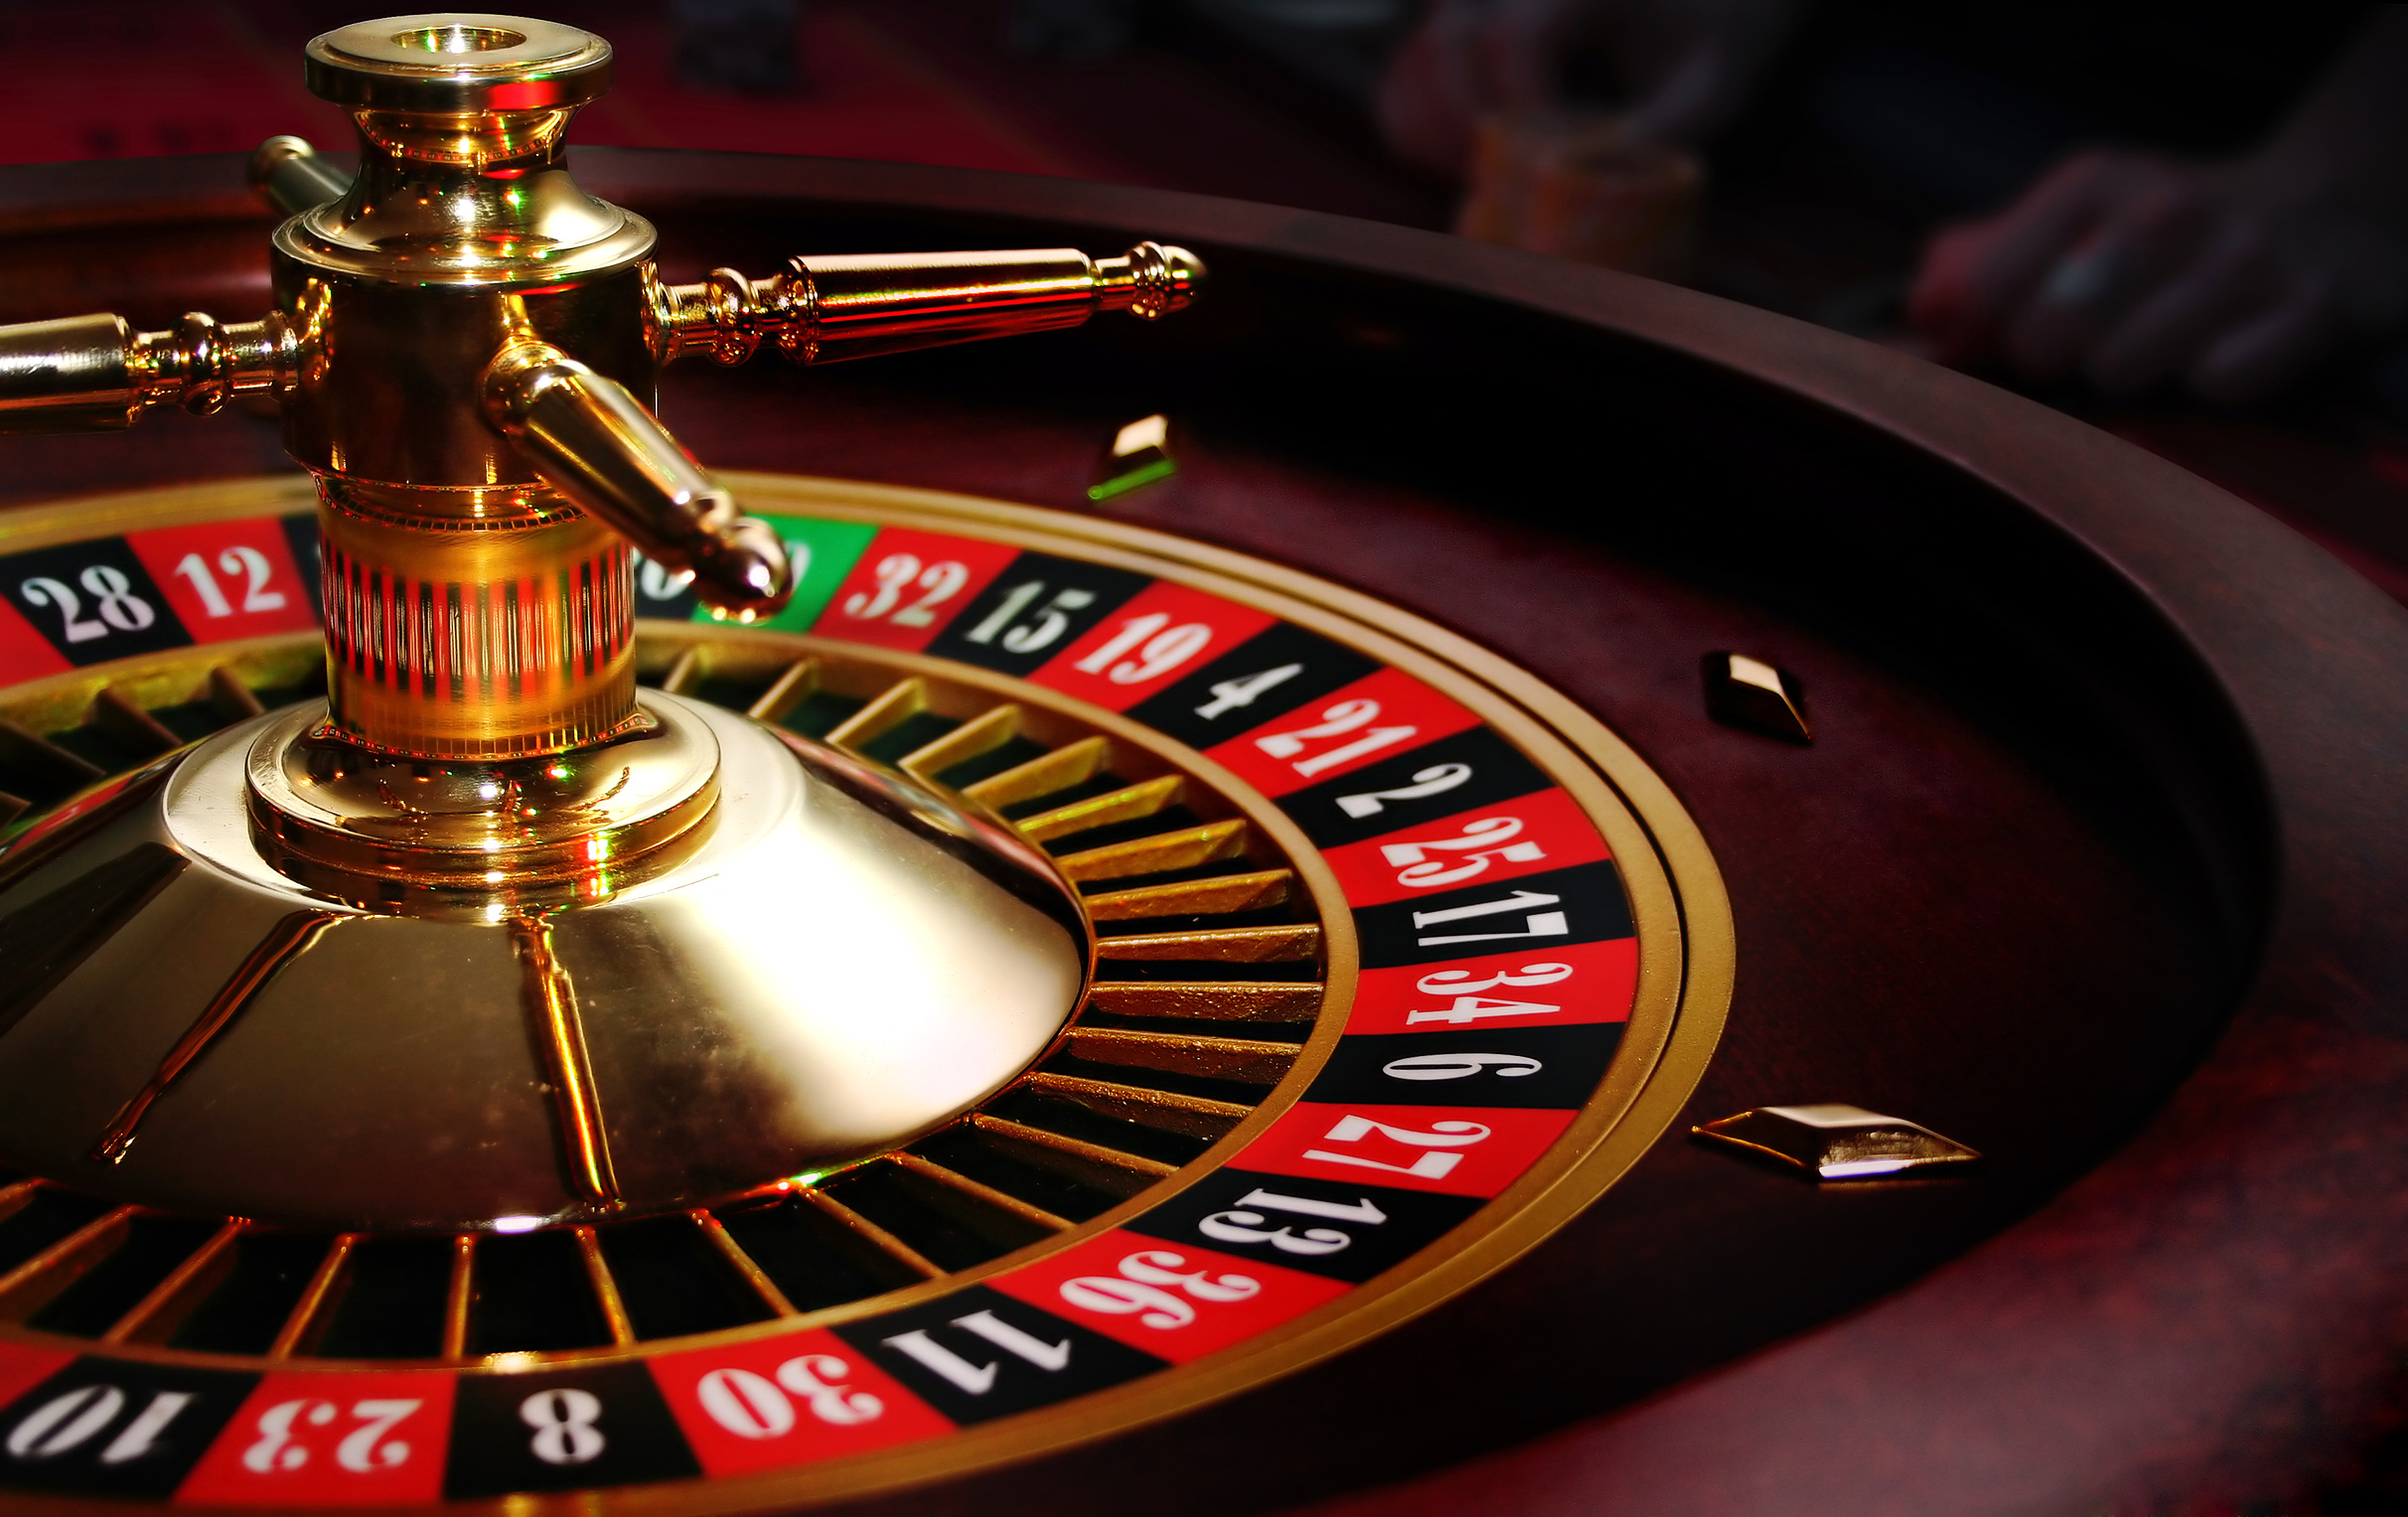 Requirements of smart phone for your mobile gambling